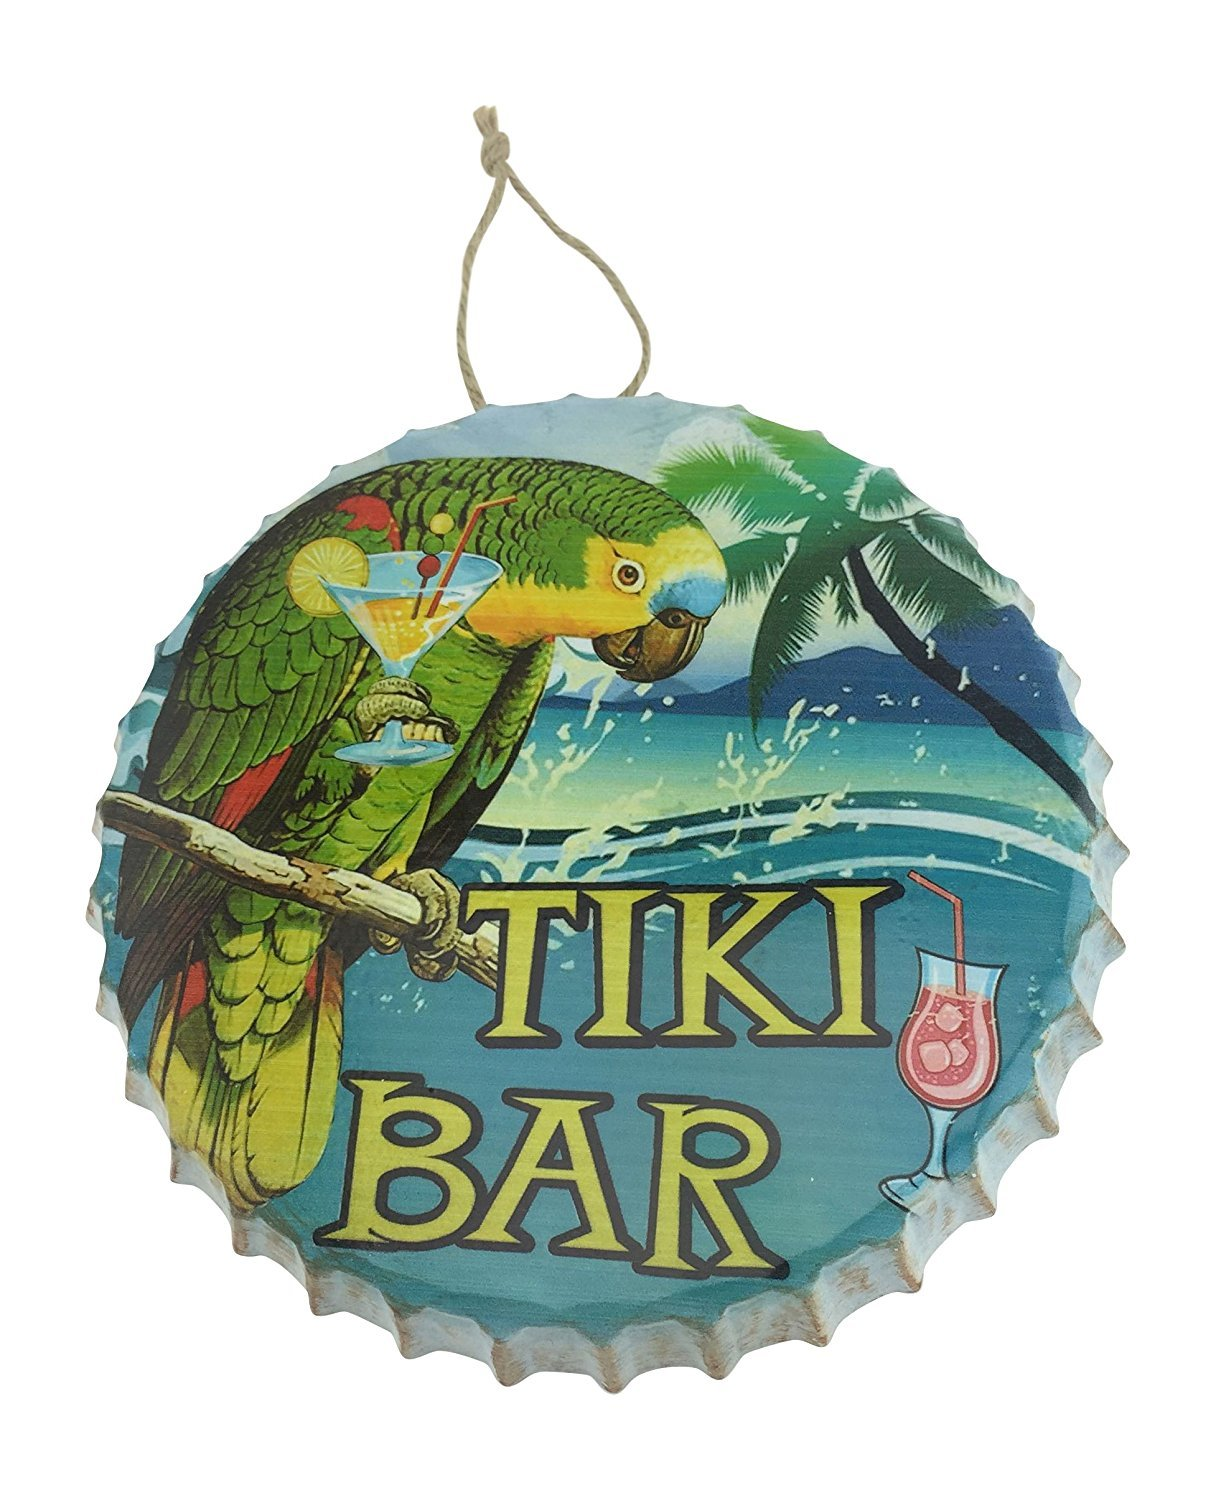 Tiki Bar Metal Bottle Cap Hanging Sign with Parrot The Globe Imports Inc W2134